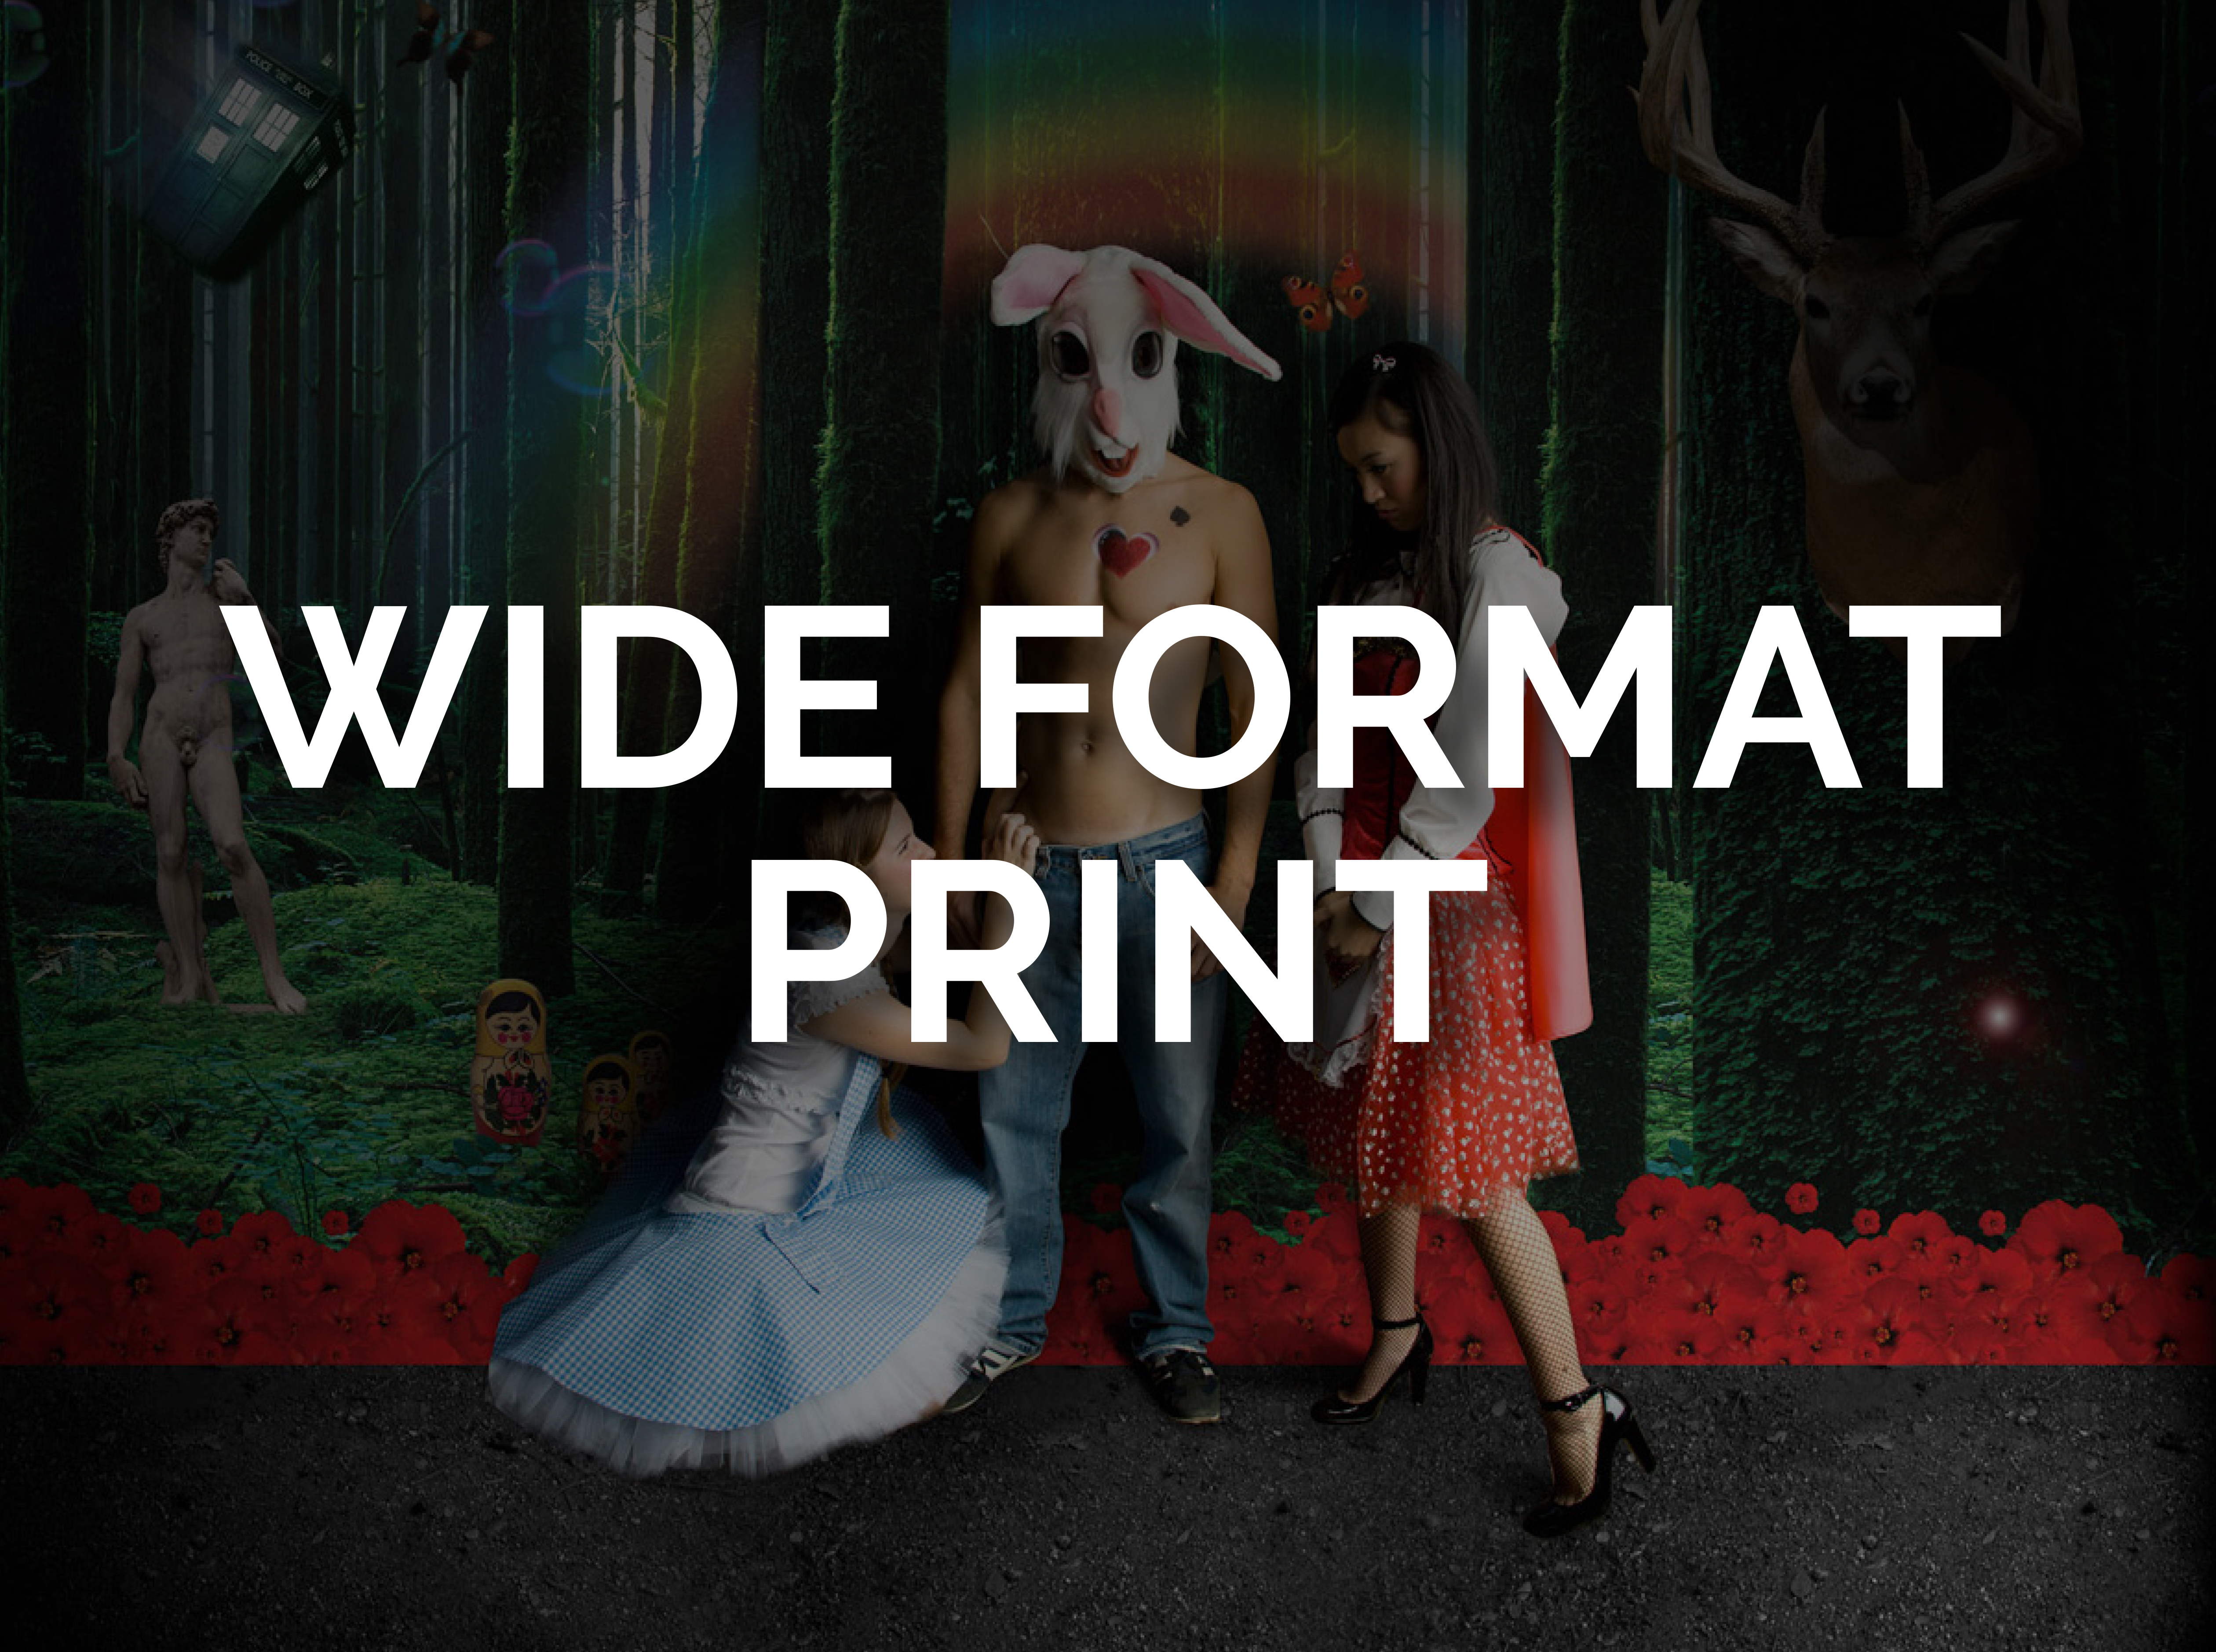 WIDE FORMAT PRINT